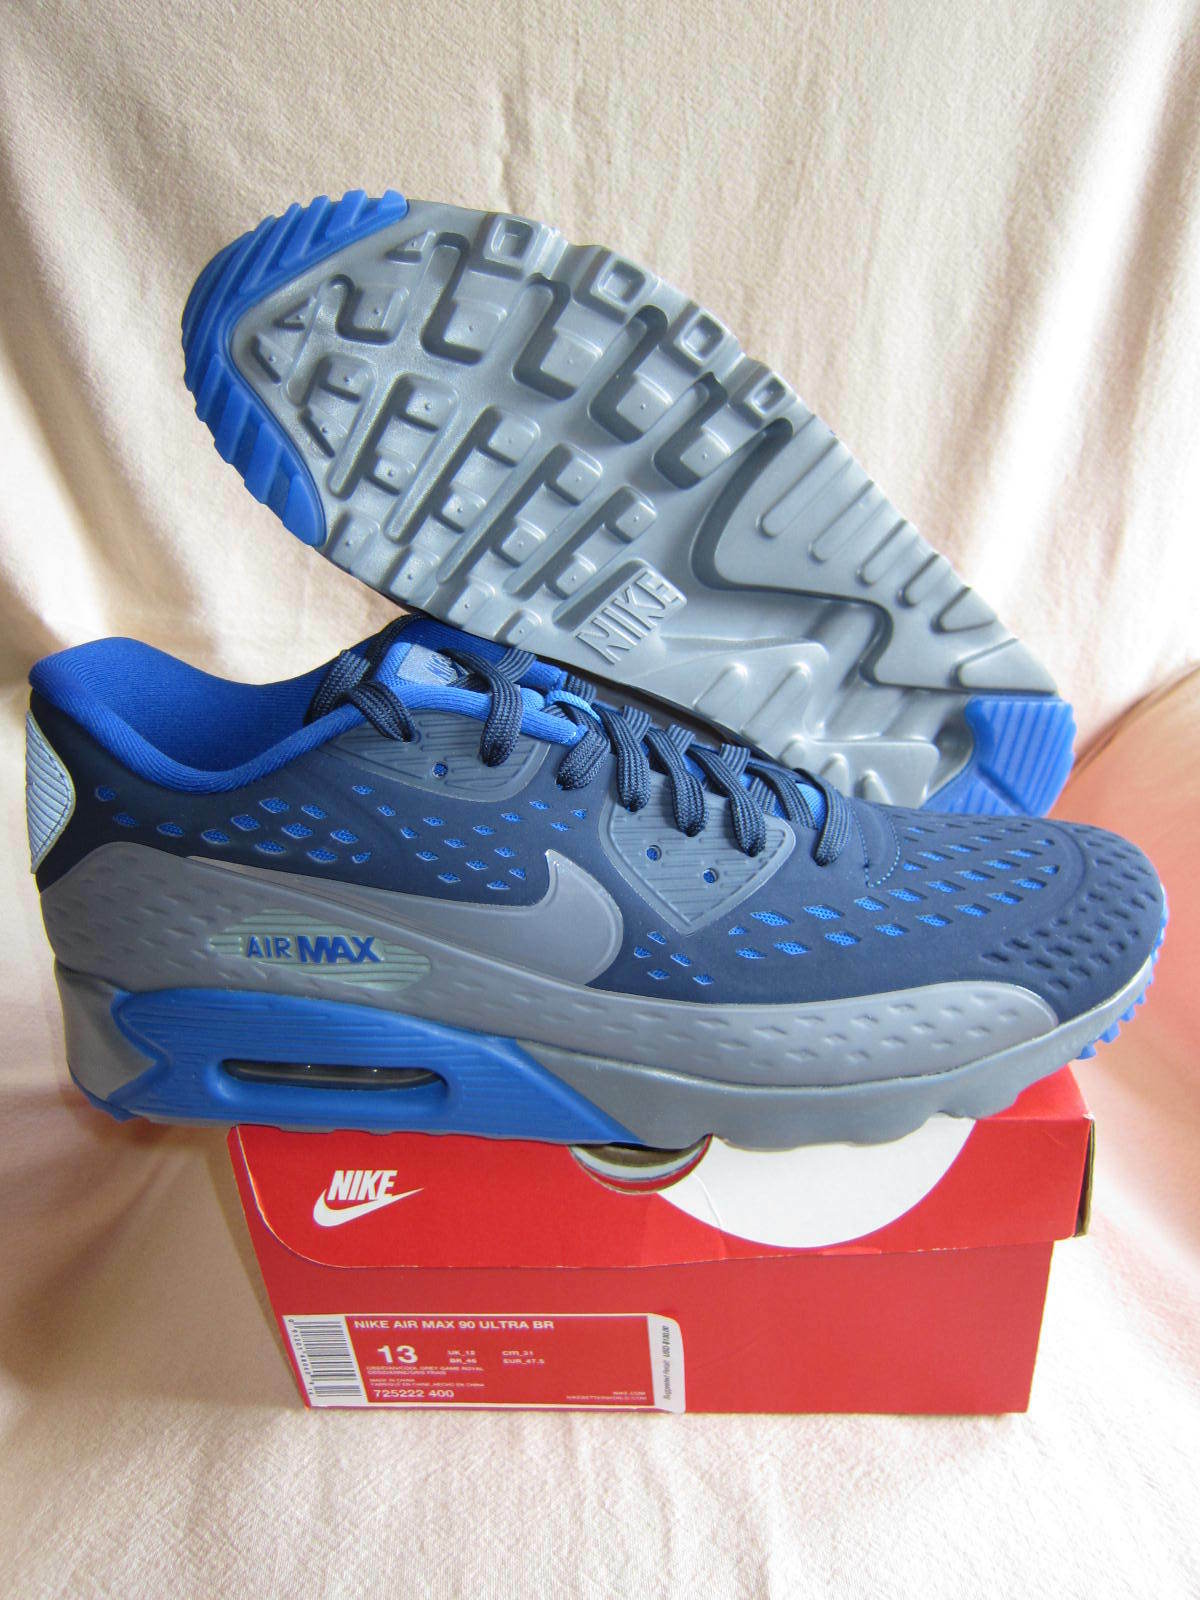 brand new b145d 1fc15 NIKE AIR MAX 90 ULTRA BR -Mens Running Shoe-Obsidian Cool Gry